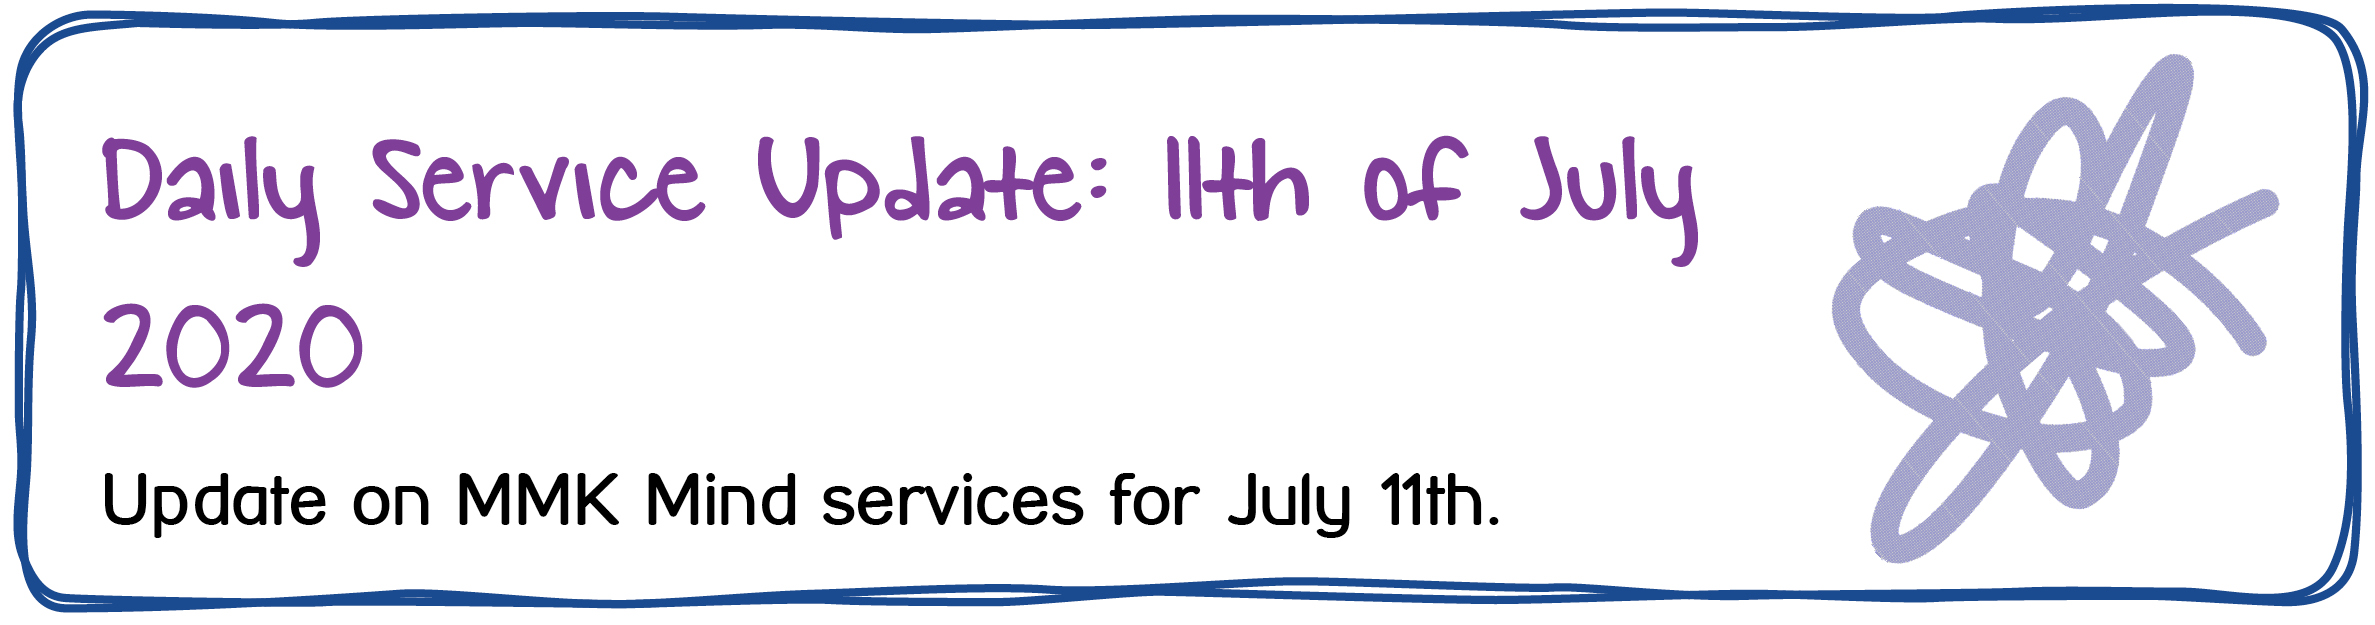 Daily Service Update: 11th of July 2020. Update on MMK Mind services for July 11th.